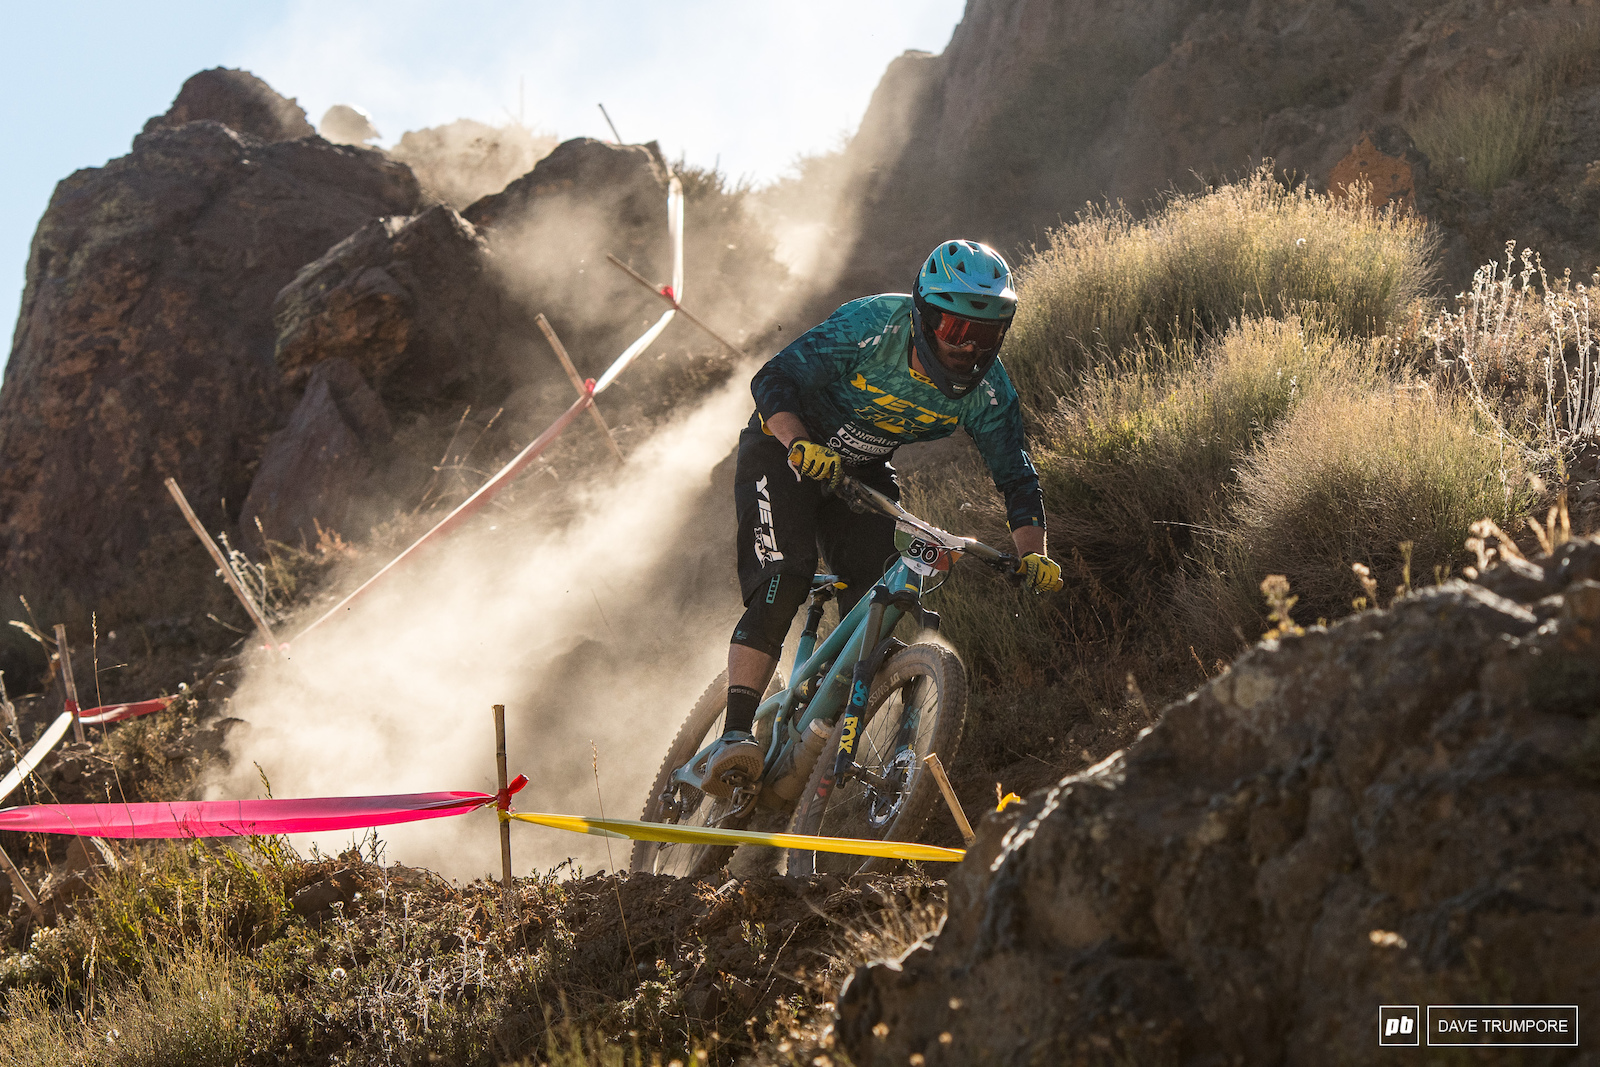 What a day for Shawn Neer taking 6th on the biggest EWS stage ever raced and finishing the day in that same position.